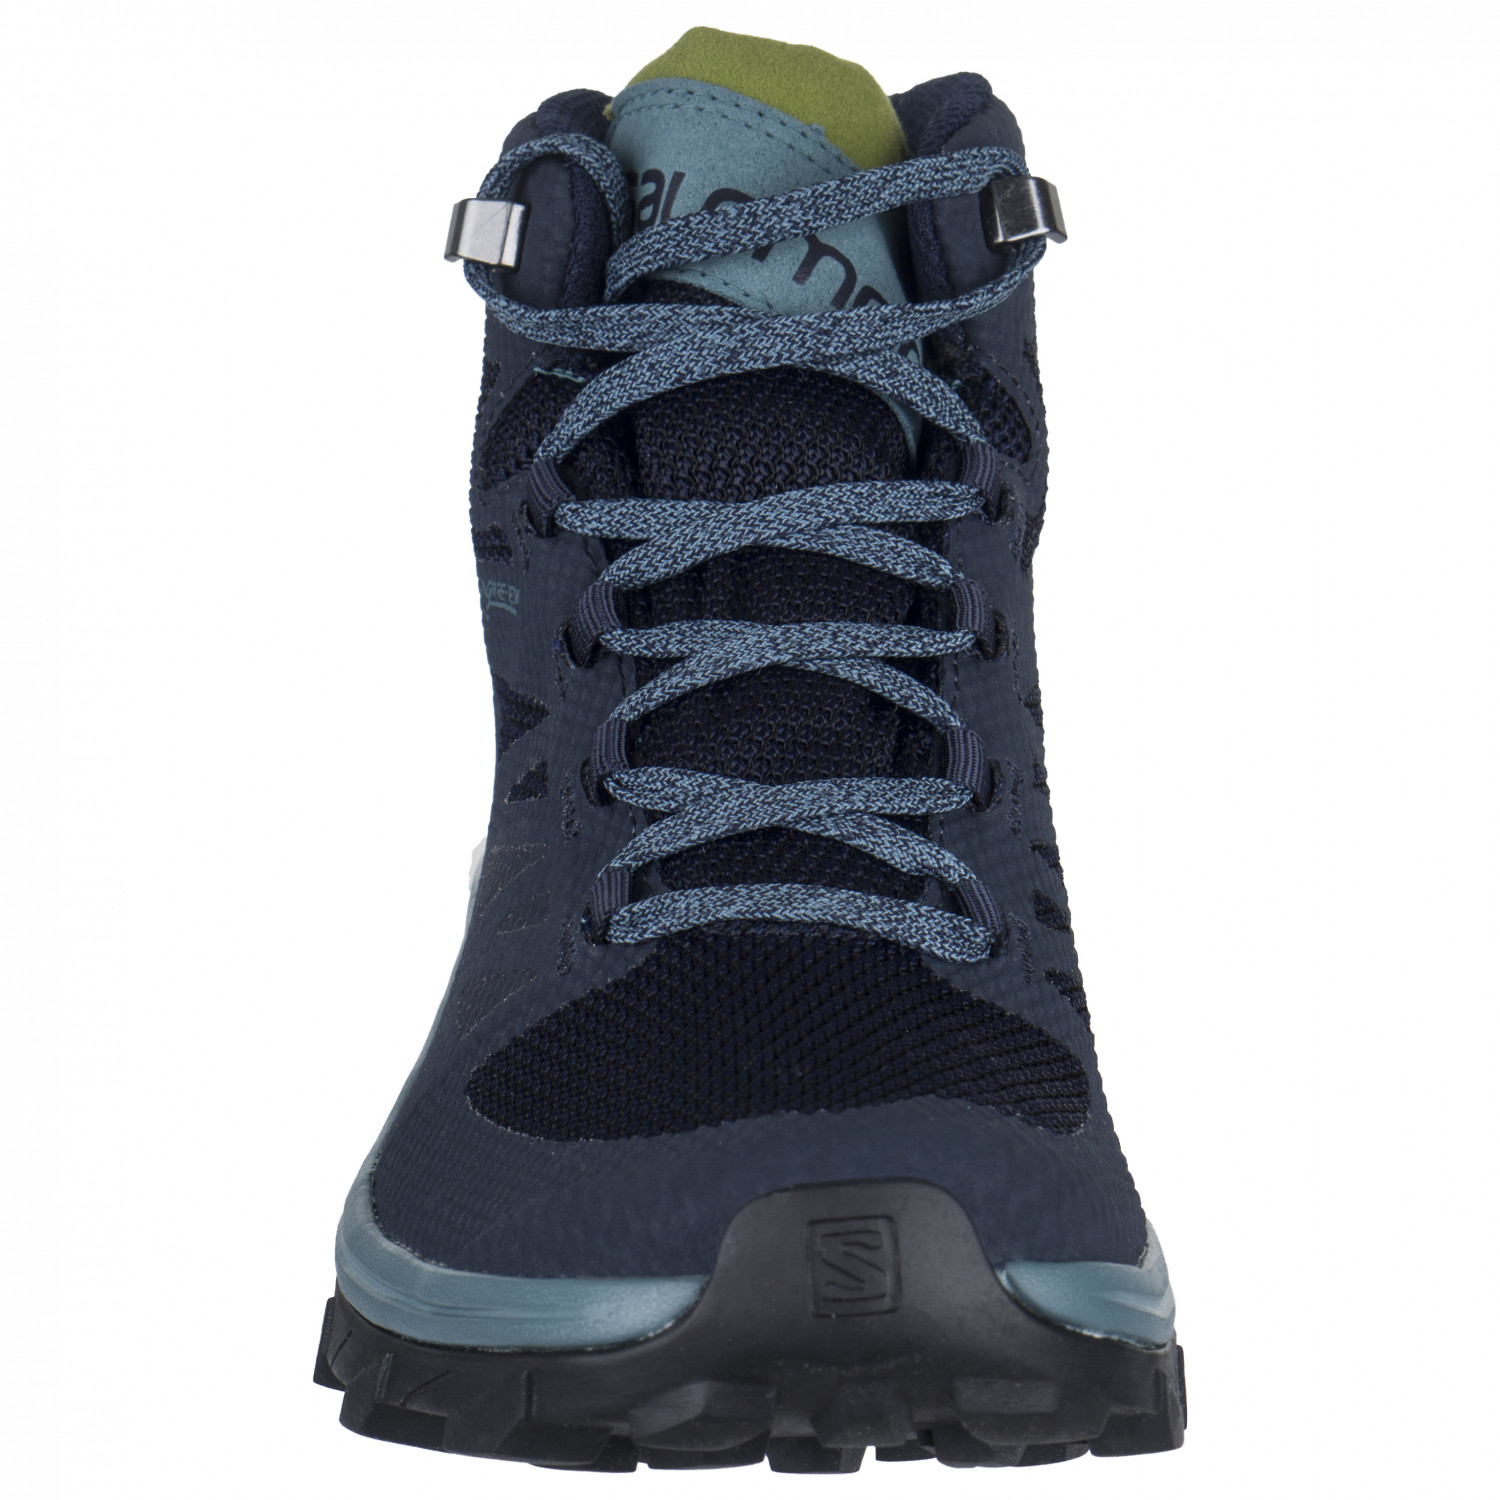 Salomon Women's Outline Mid GTX Wanderschuhe Navy Blazer Hydro Guacamole | 4 (UK)